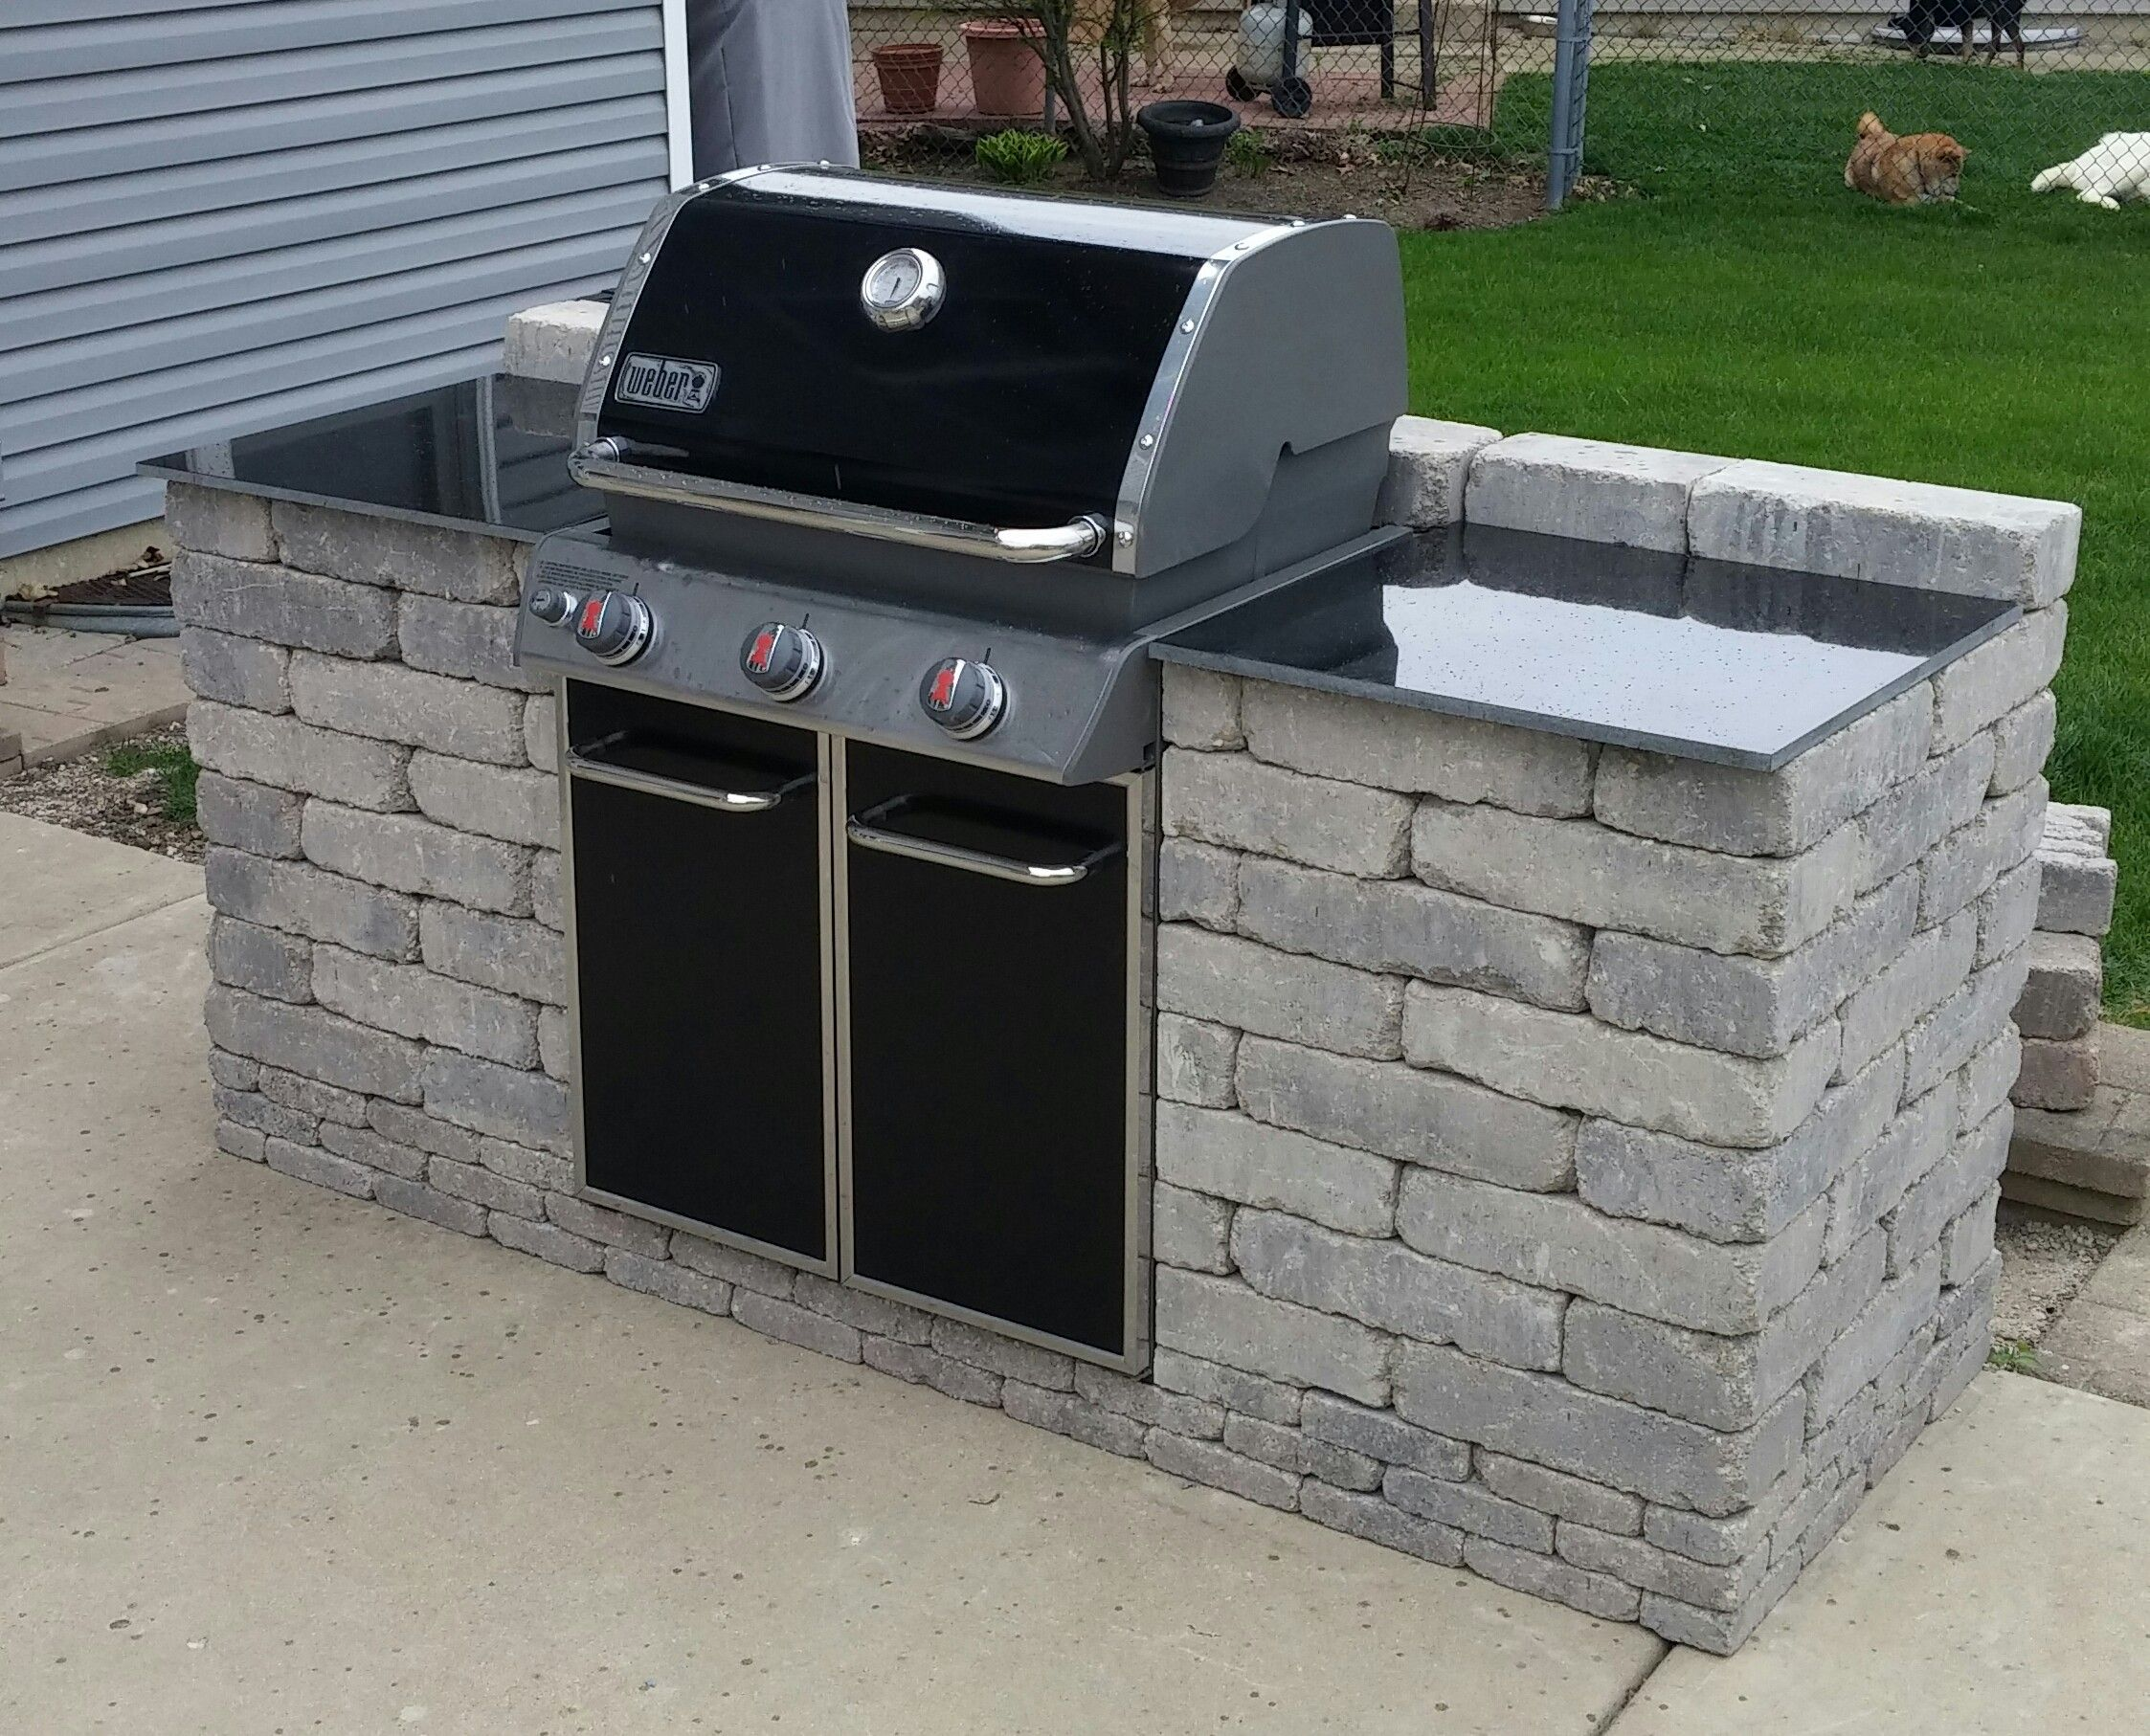 Barbeque grill enclosure projects to try pinterest for Backyard built in bbq ideas